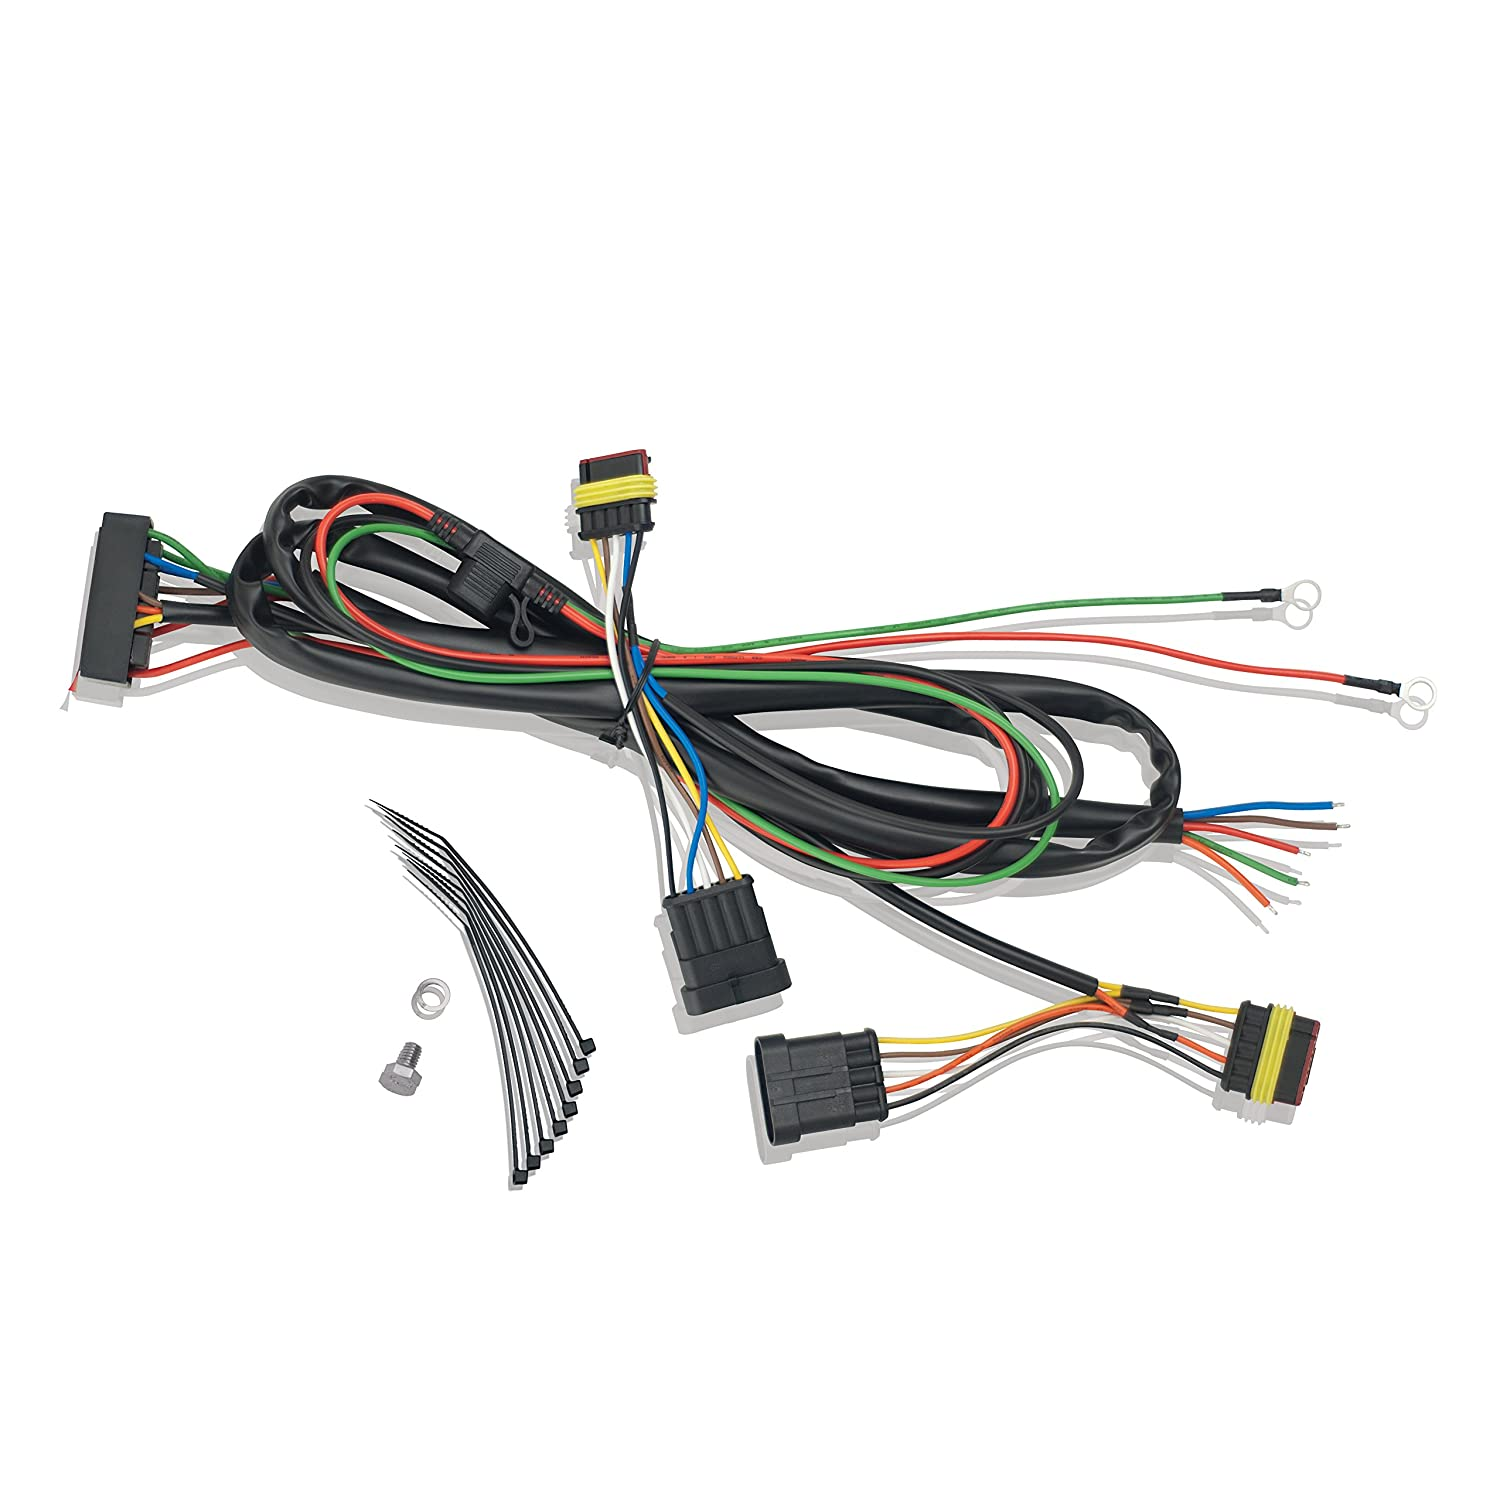 81dZHpG1lCL._SL1500_ amazon com show chrome accessories 41 162 trailer wire harness can am spyder trailer wiring harness at honlapkeszites.co